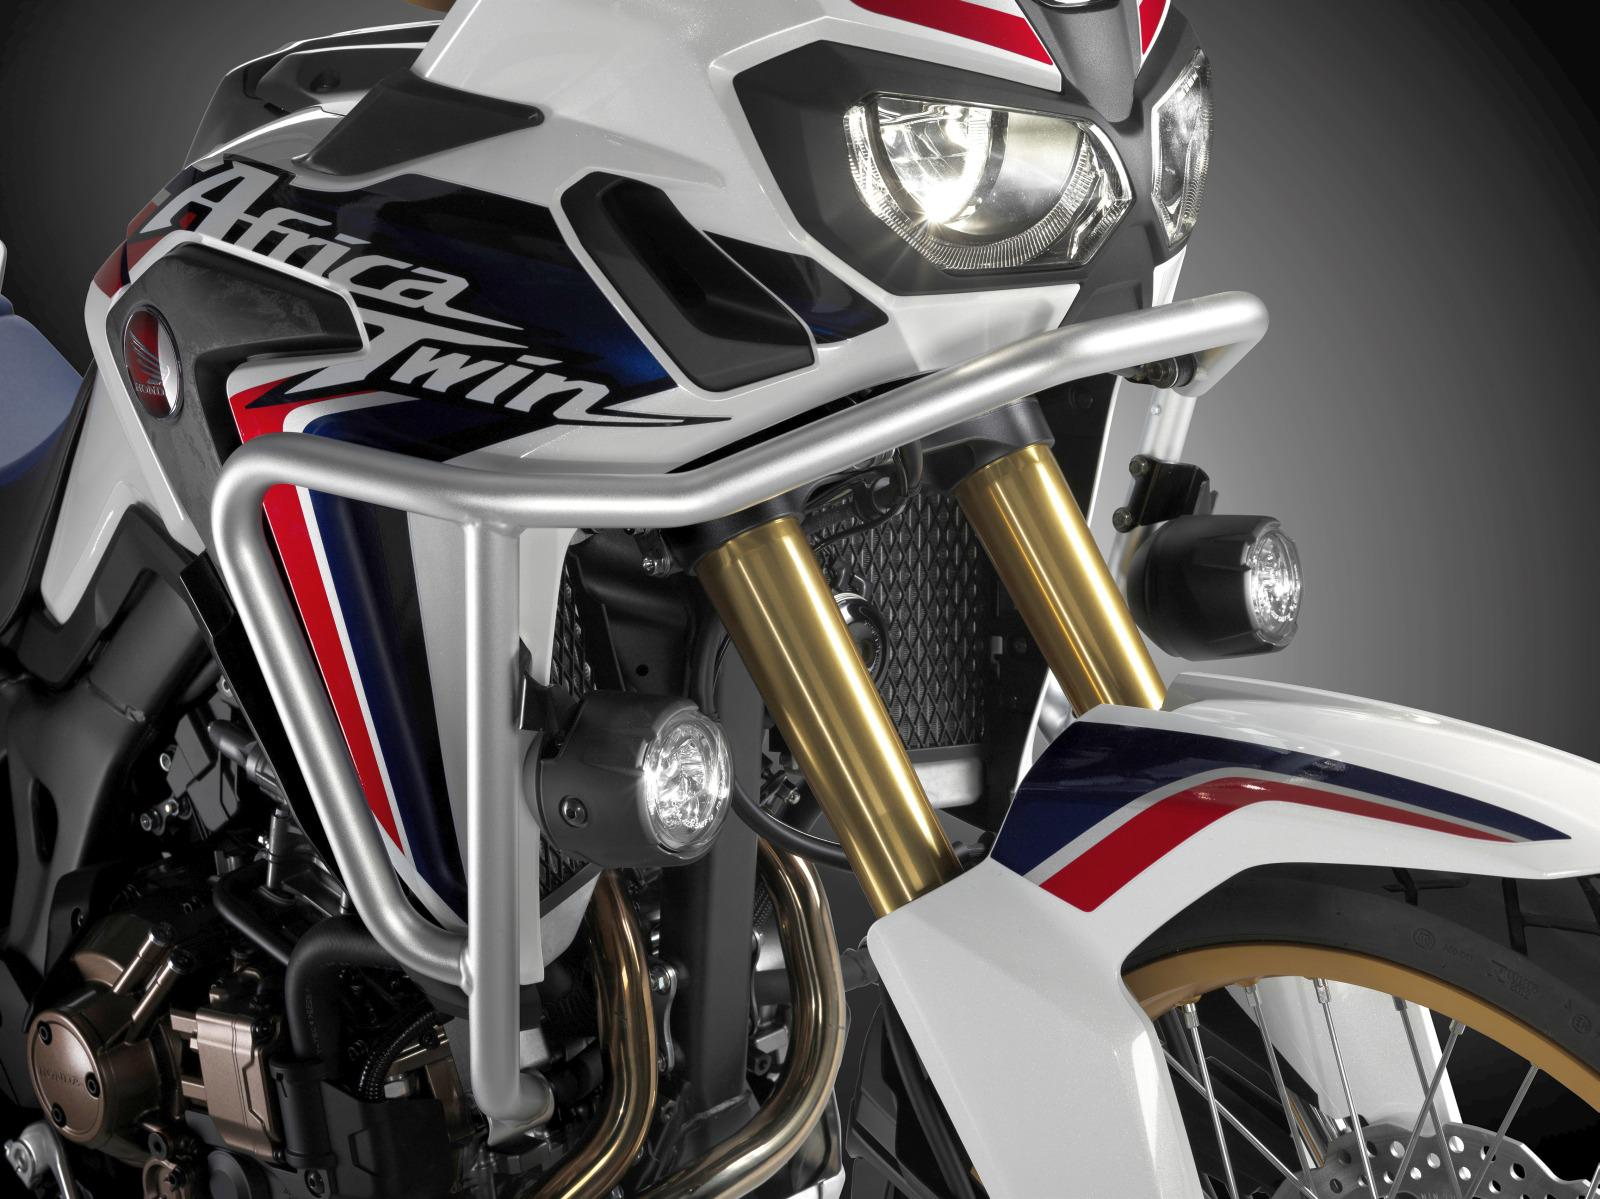 New 2016 honda africa twin accessories announced crf1000l honda allows the use of the ignition key to lock and unlock top case and panniers aloadofball Gallery